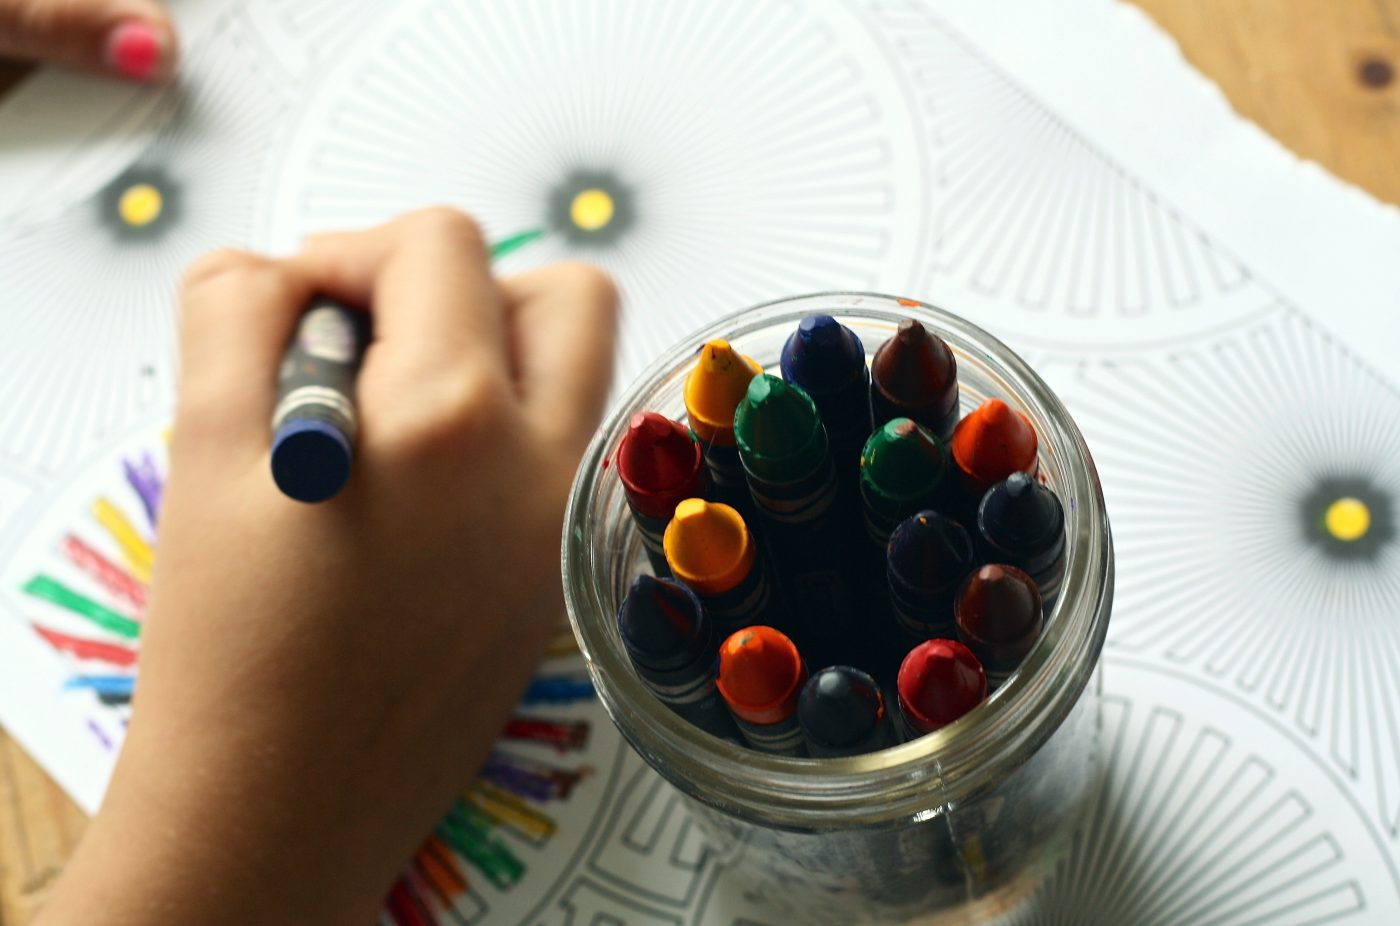 A child's hand coloring with a crayon. There is a glass jar of crayons next to the hand.